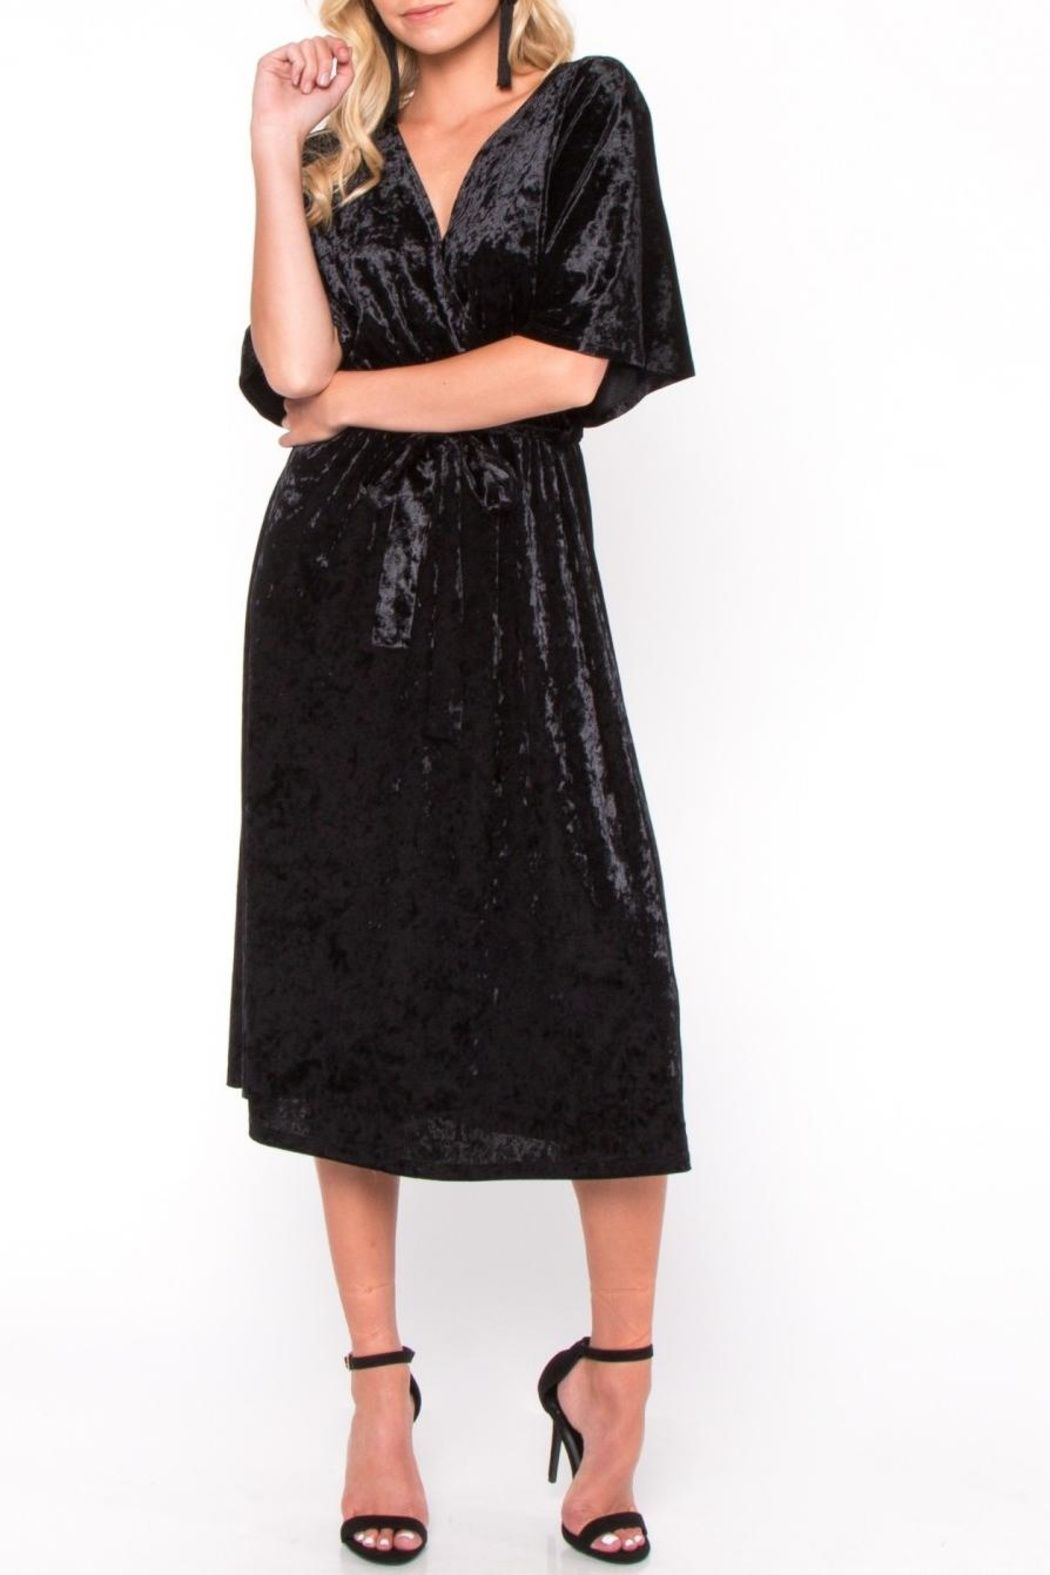 41071f8527639 Crushed black velvet midi dress featuring short bell-sleeves, draped in a  velvet wrapped silhouette. Soft comfortable fabric with slight stretch.